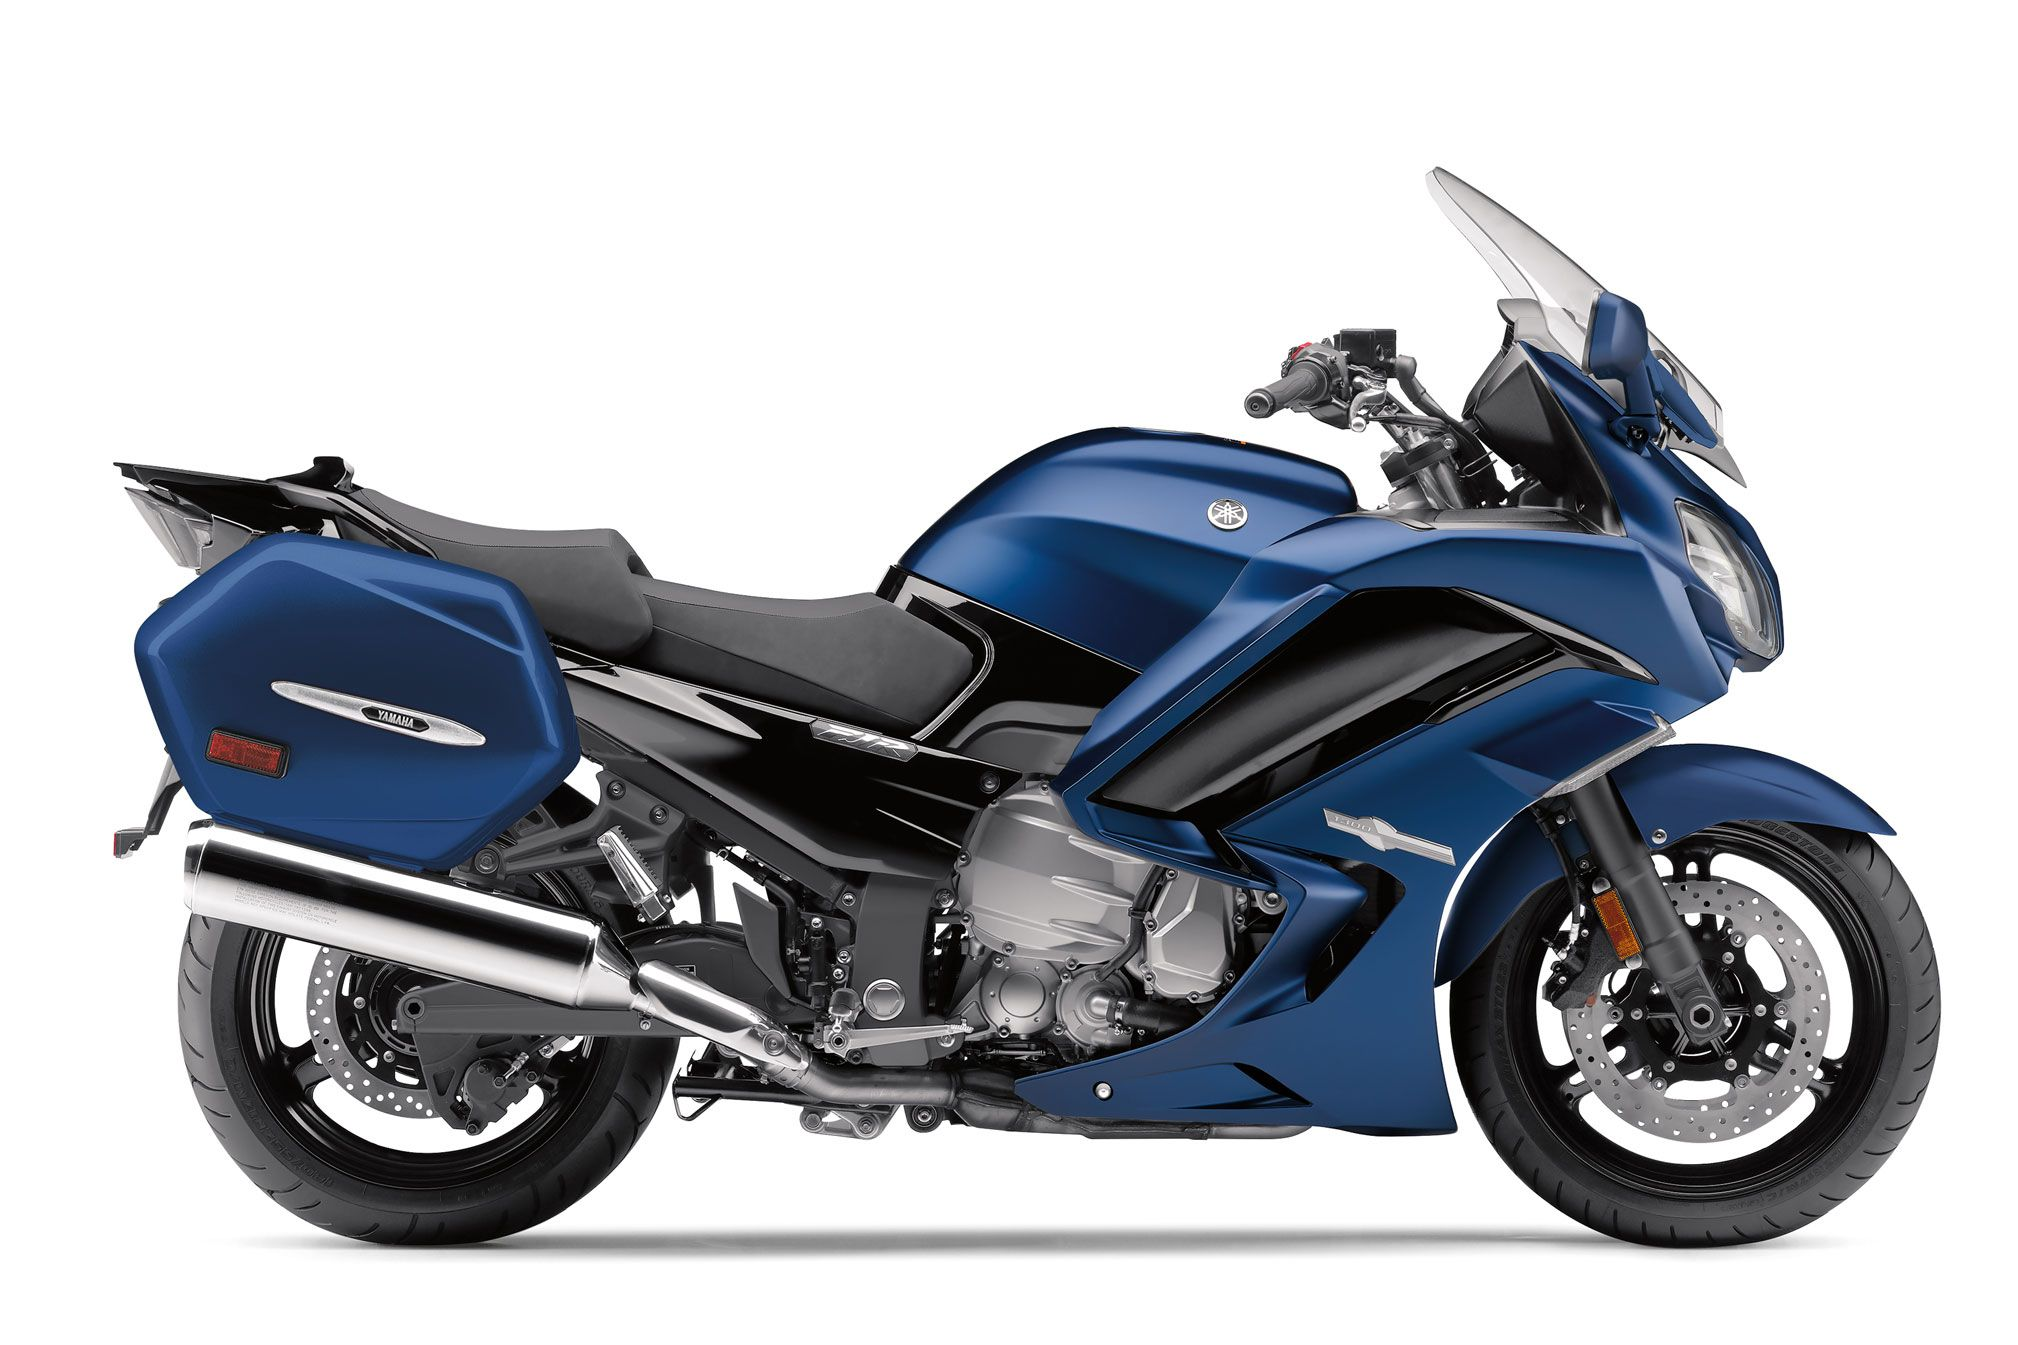 2018 Yamaha FJR1300A Review SPORT TOURING IN STYLE. 2018